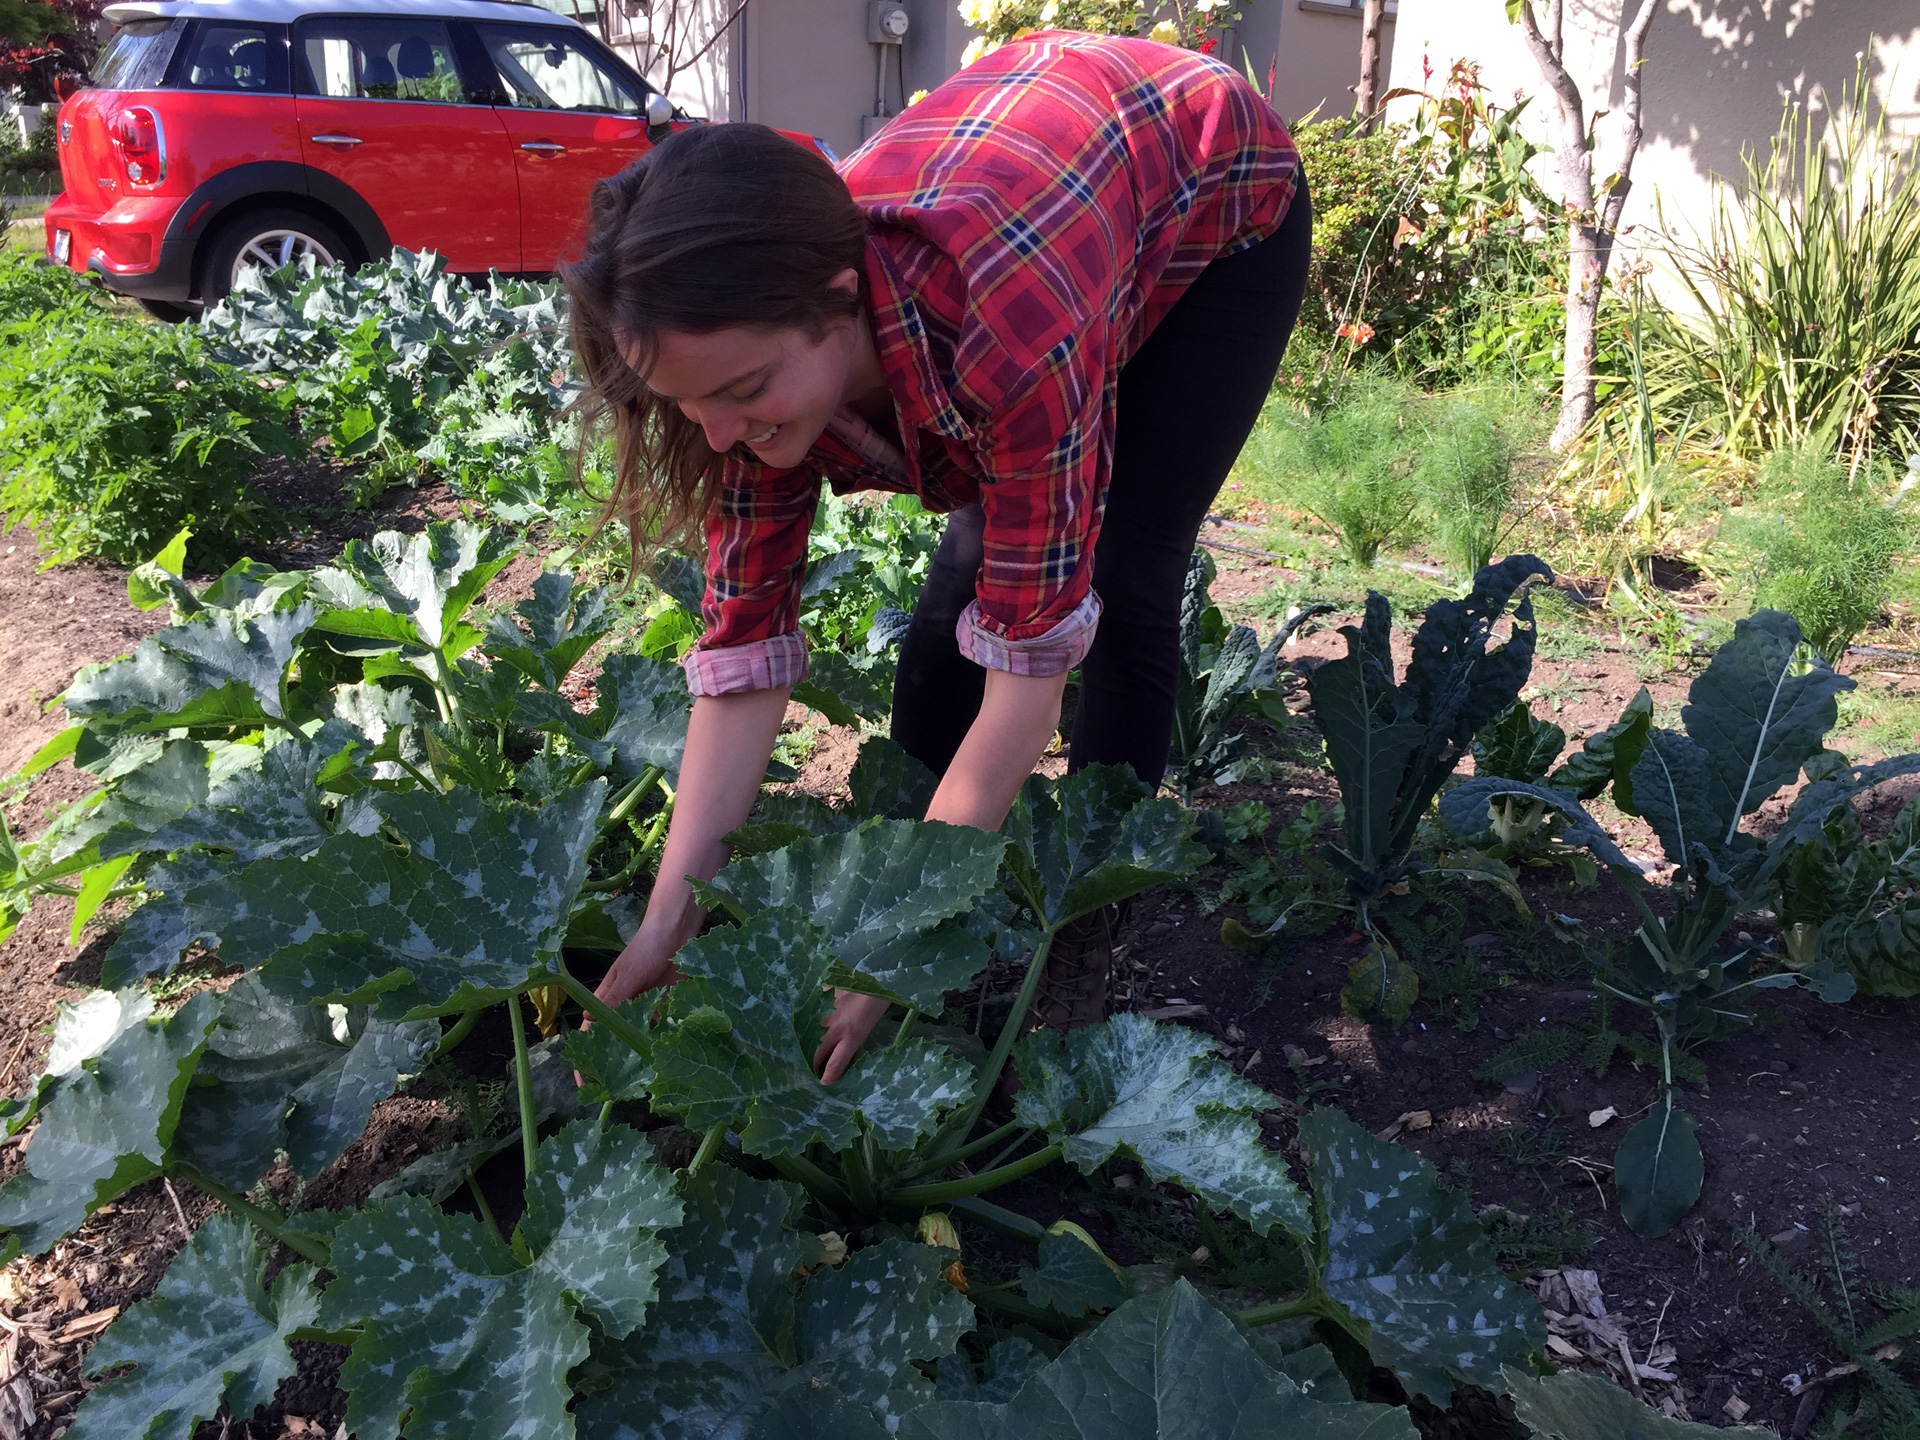 Mary Lemmer tends to a garden at a client's home in Oakland.